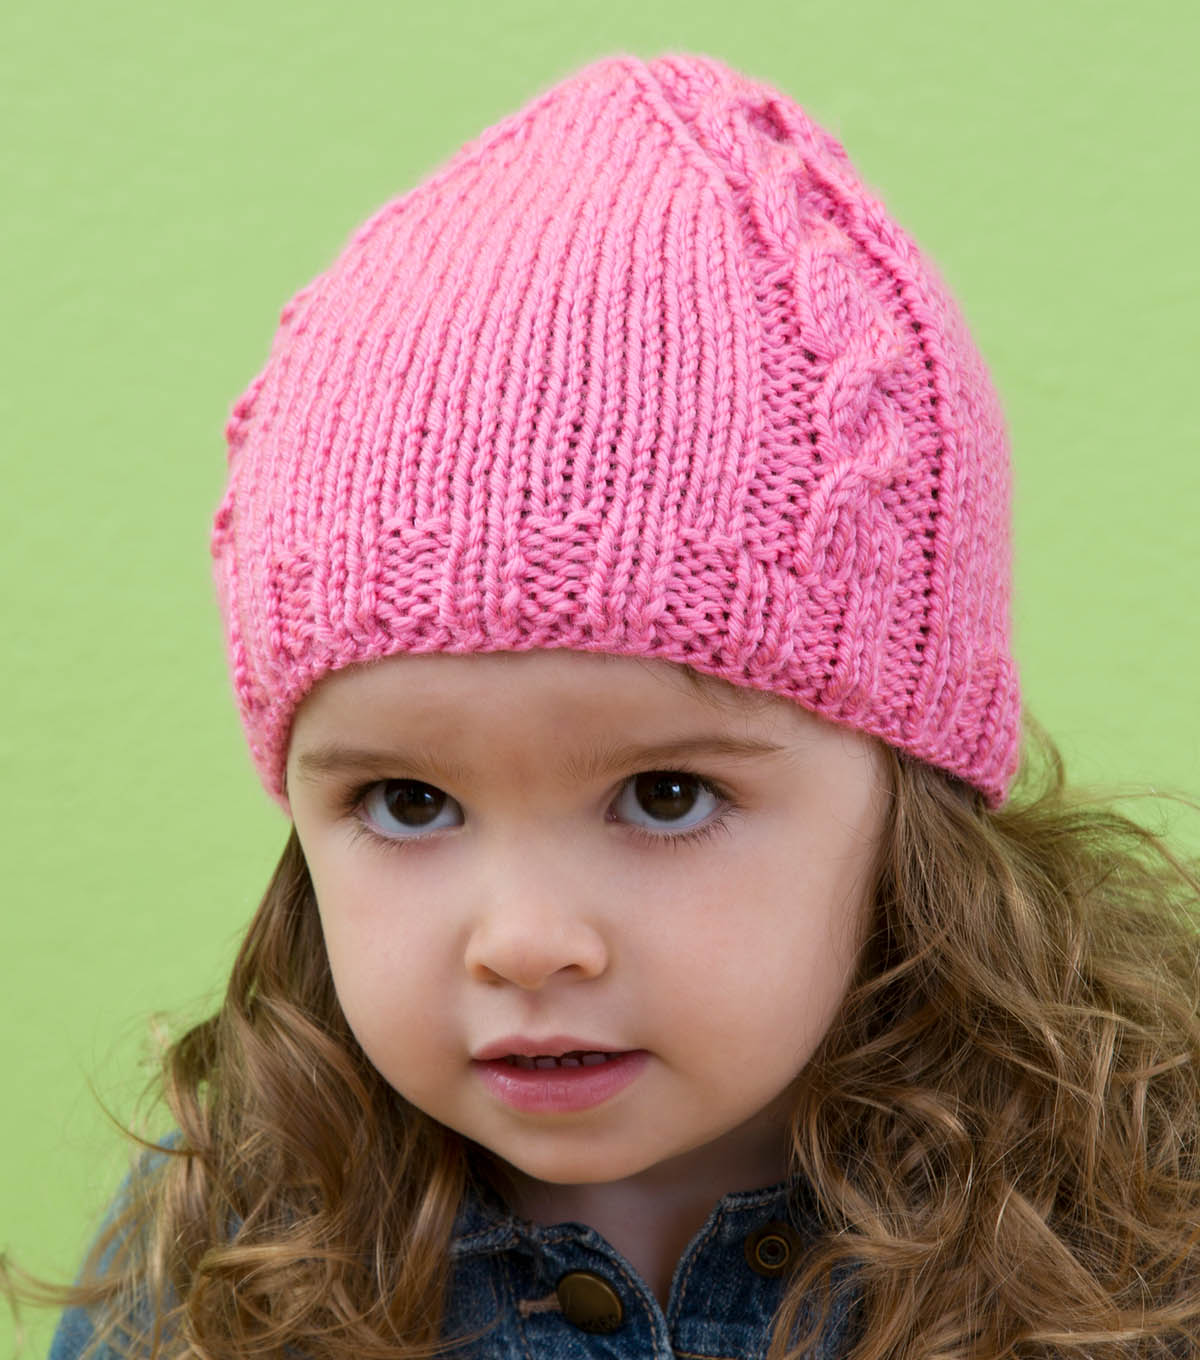 How To Knit A Cabled Baby Beanie Free Pattern